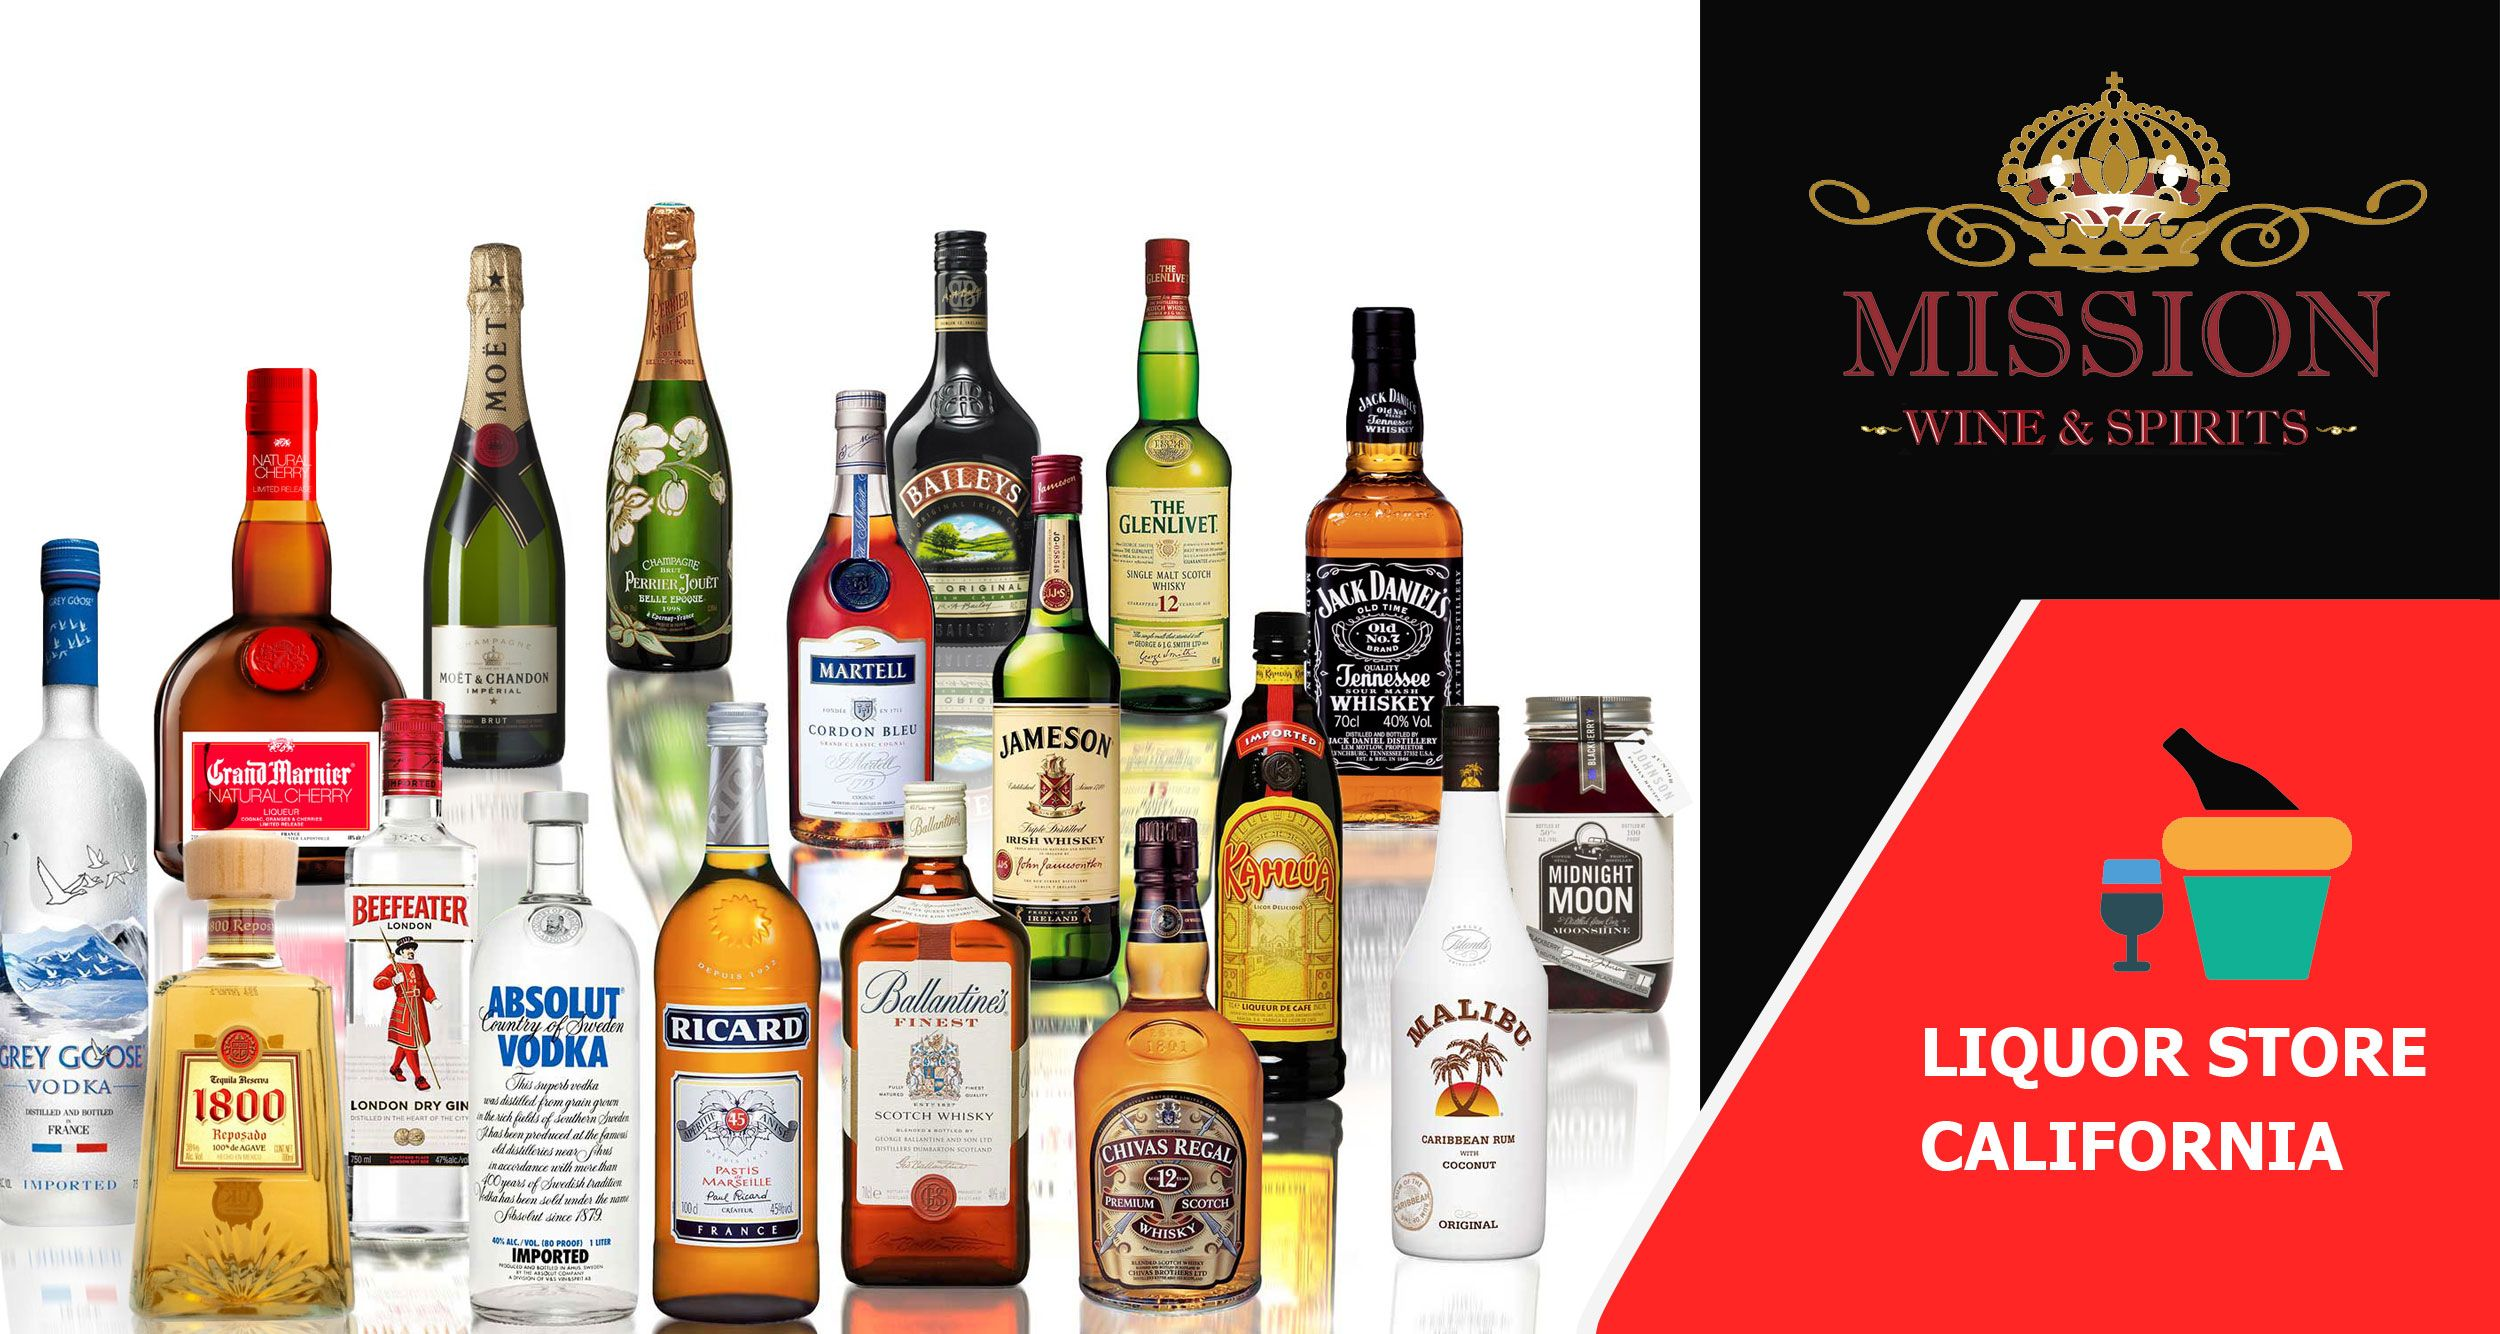 a9596ba67b4 Liquor Store California _ Mission Liquor is the premier online wine and  spirits store in Southern California.We strive to provide the outstanding  products ...